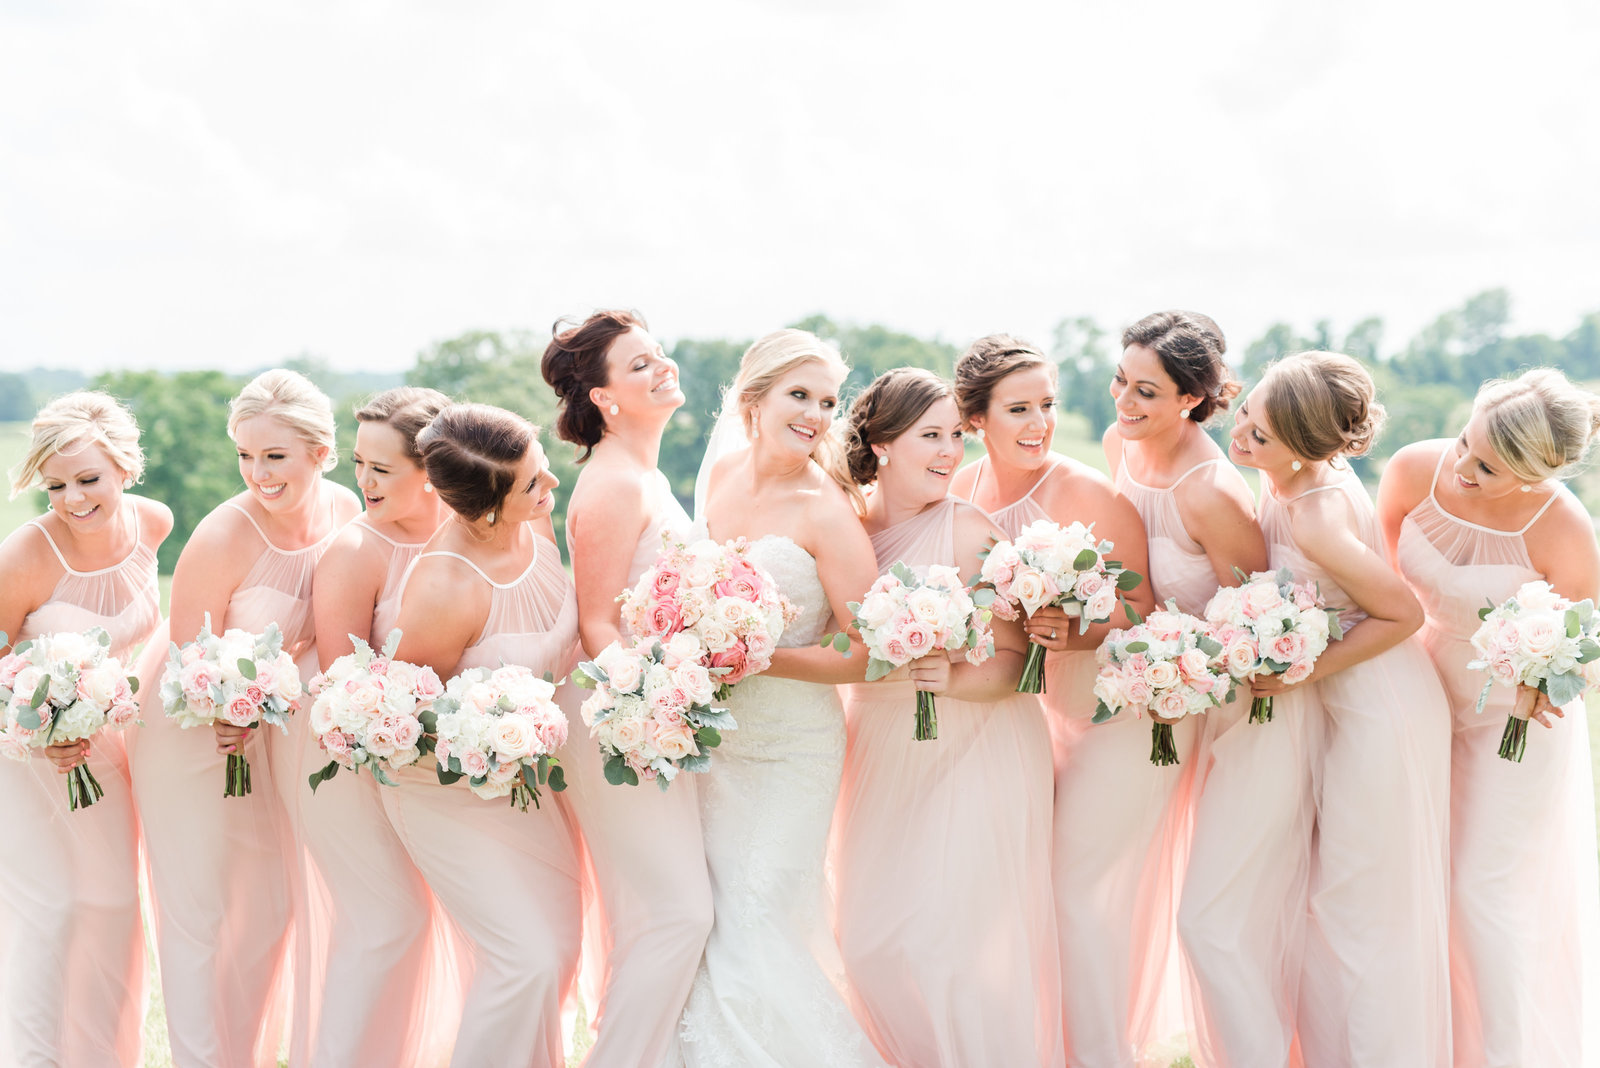 shadow-creek-blush-northern-virginia-wedding-by-va-wedding-photographer-photo65